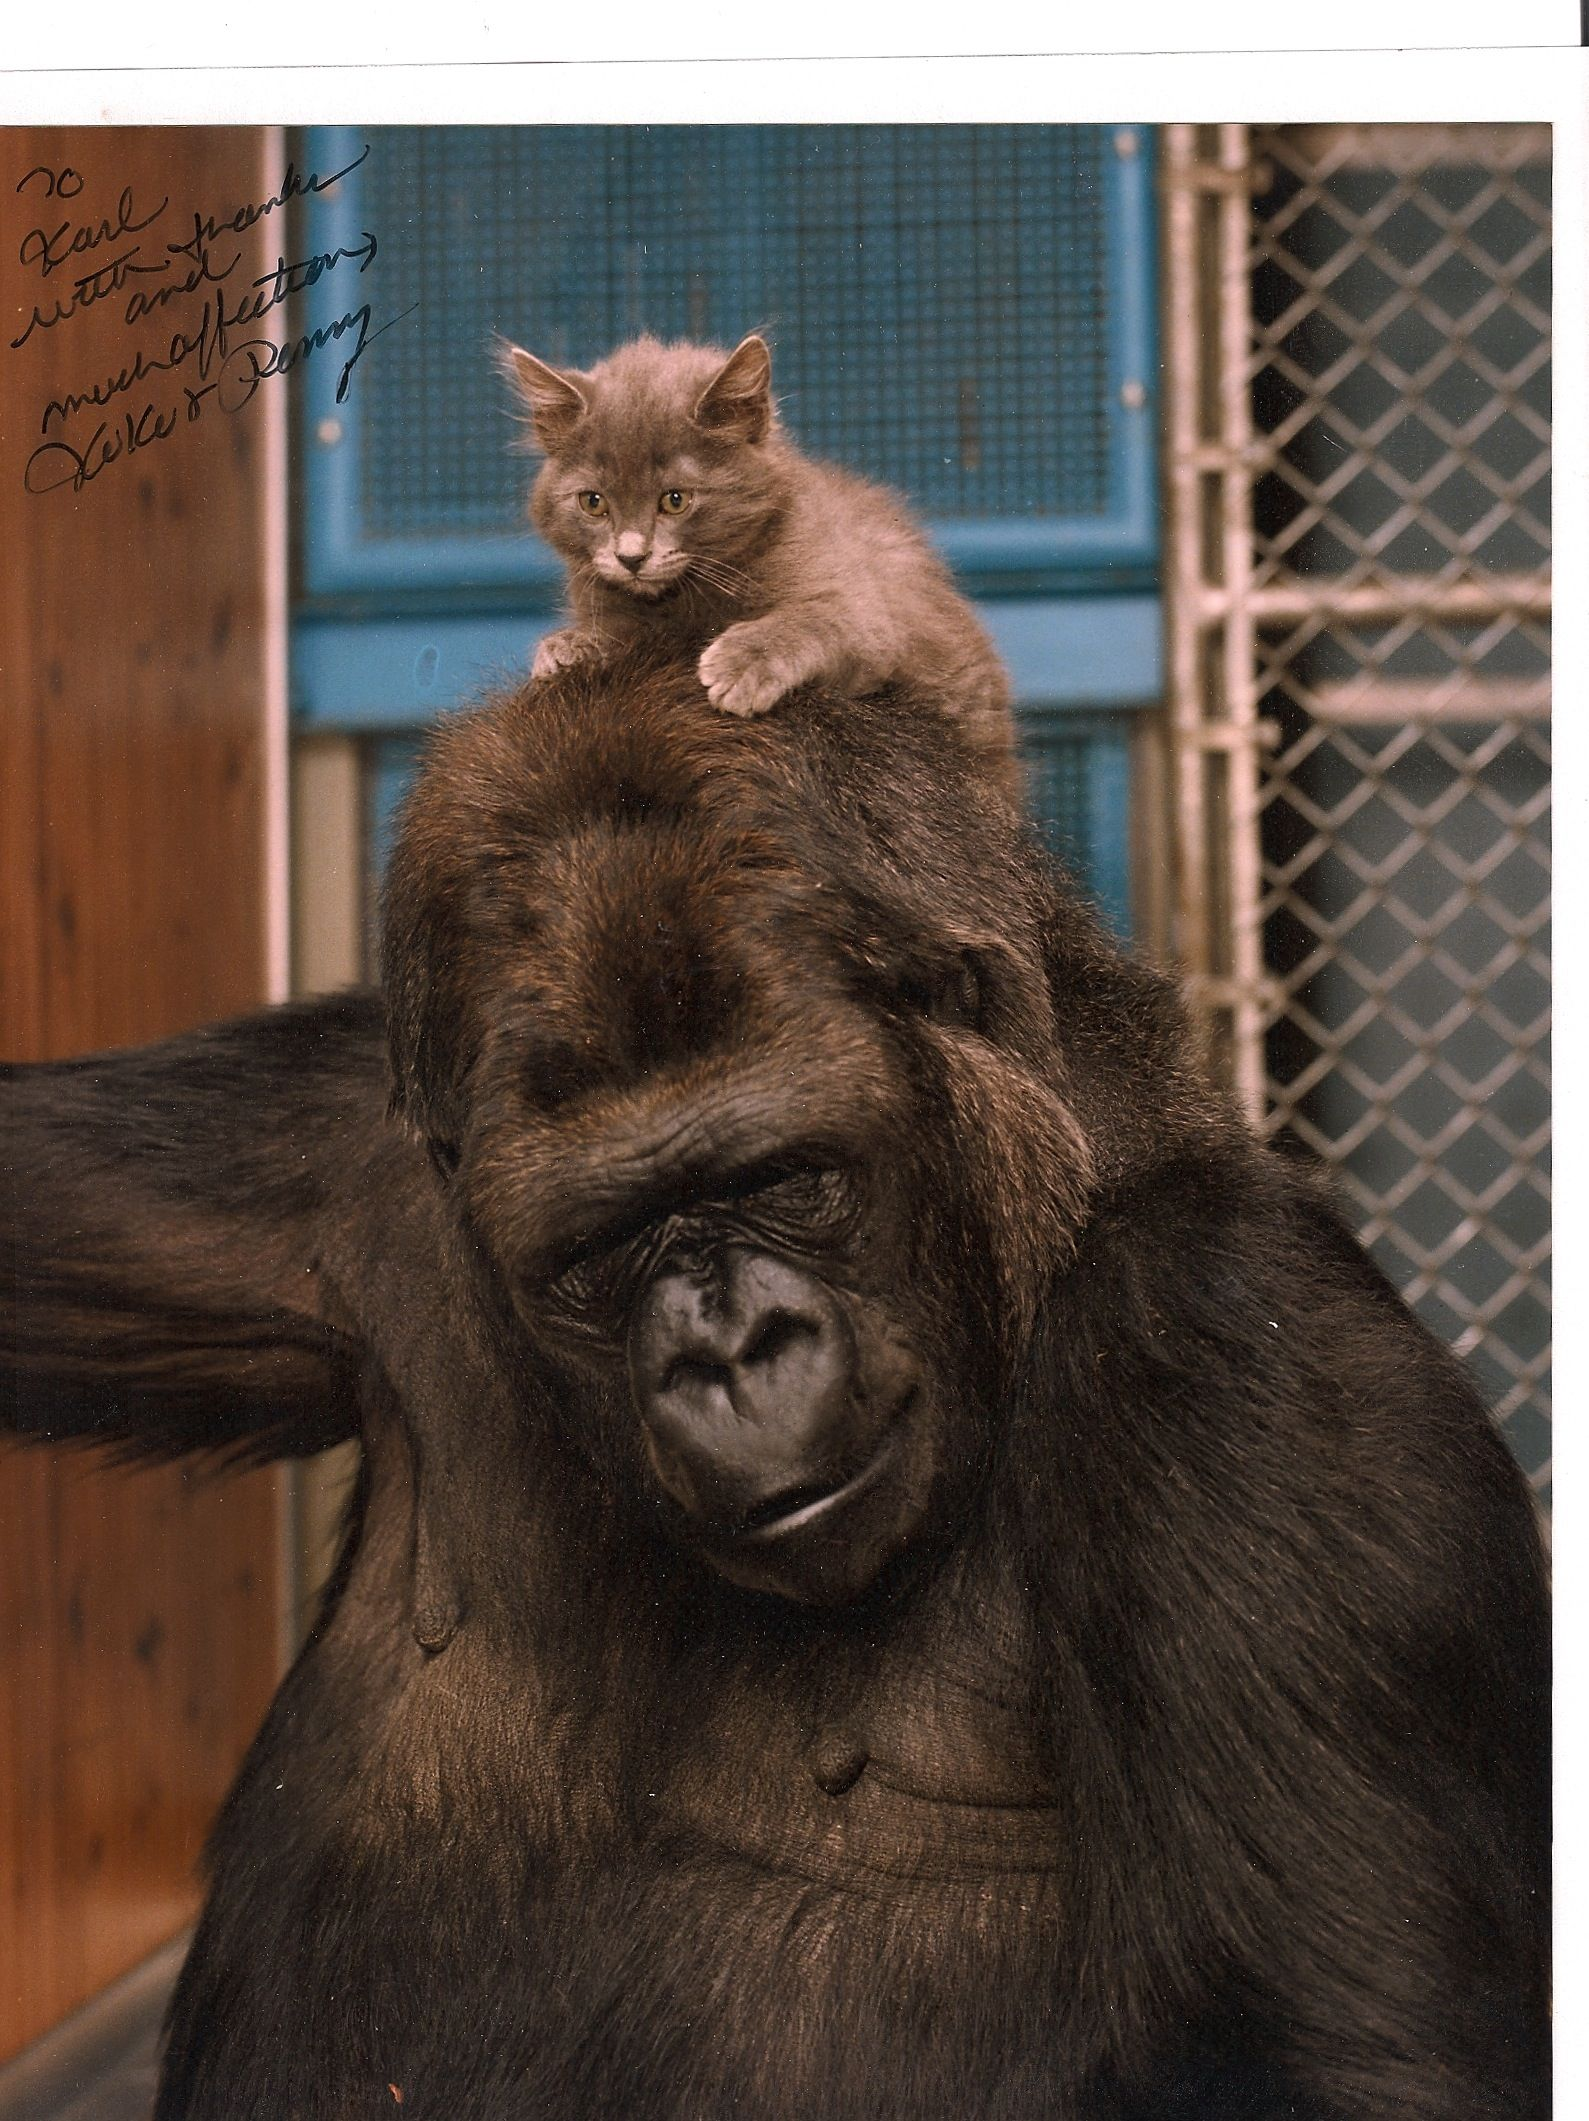 Koko Taking Care Of A Kitten Koko Kitten Gorilla Koko Gorilla